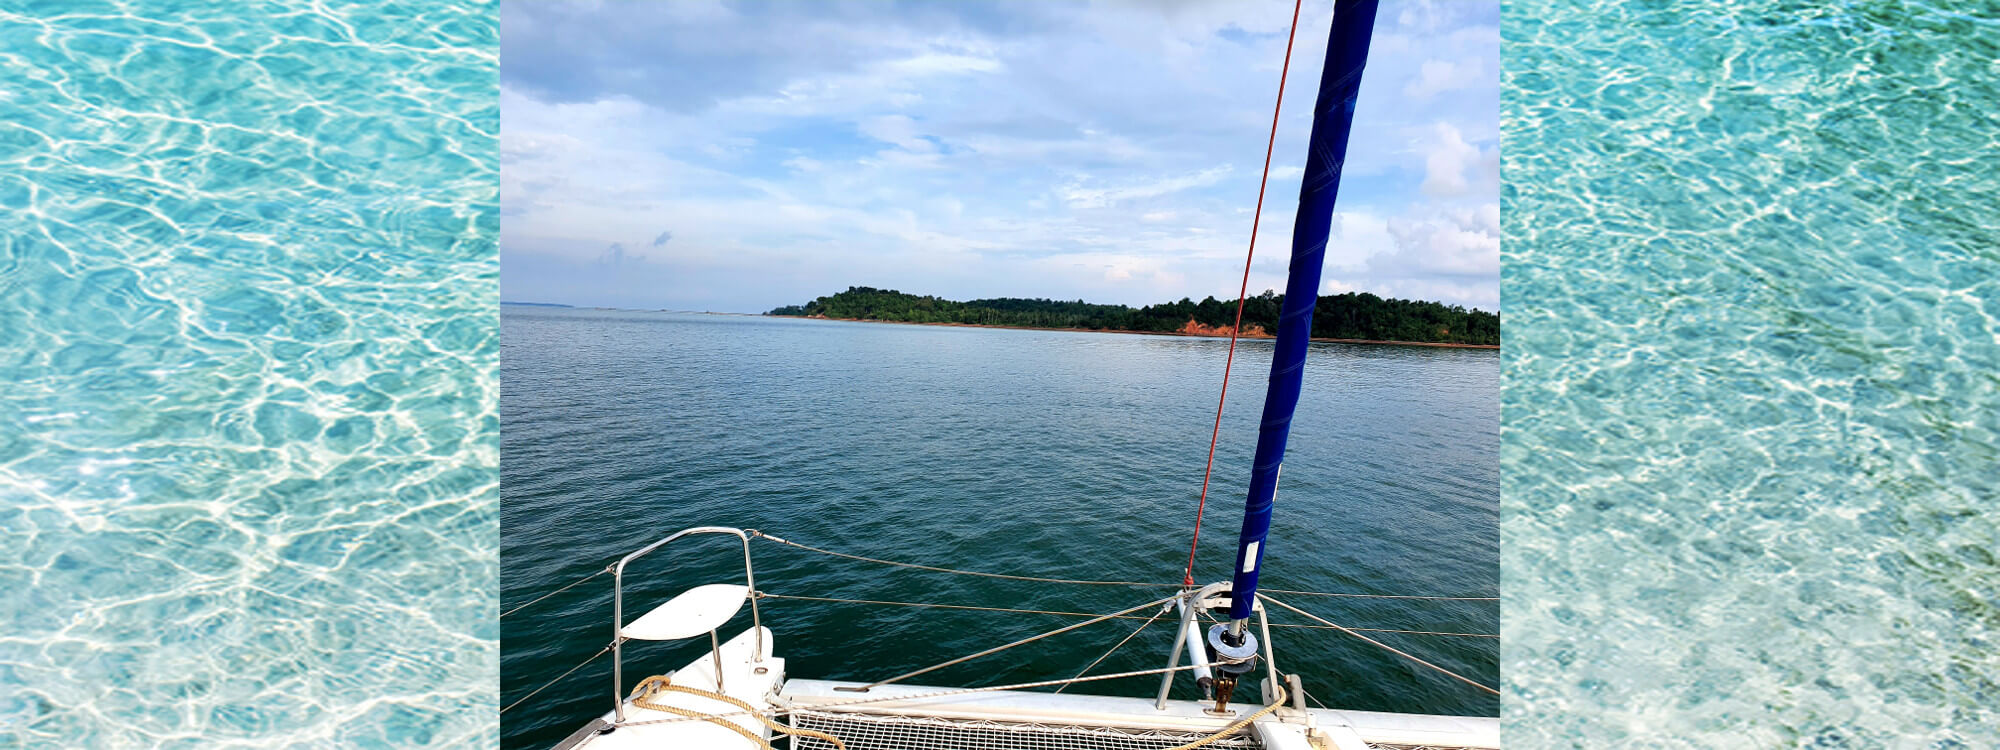 Anchored off a tiny island on the east of Bintan.